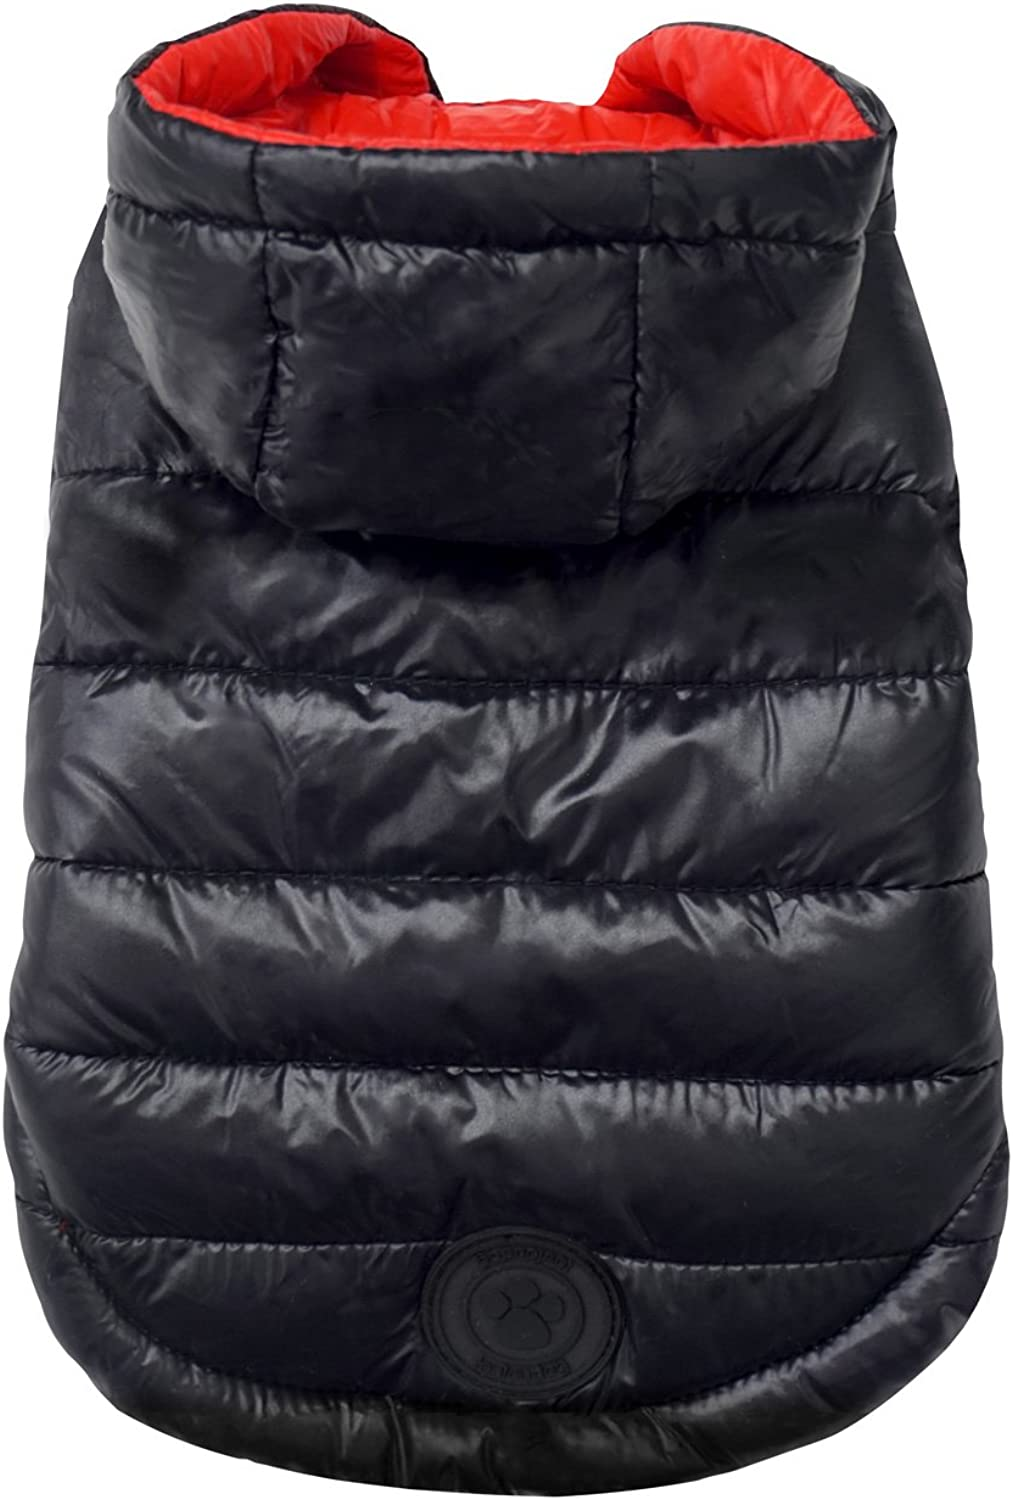 FouFou Dog Reversible Puffer Coat for Dogs with Travel Pouch, XSmall, Red Black